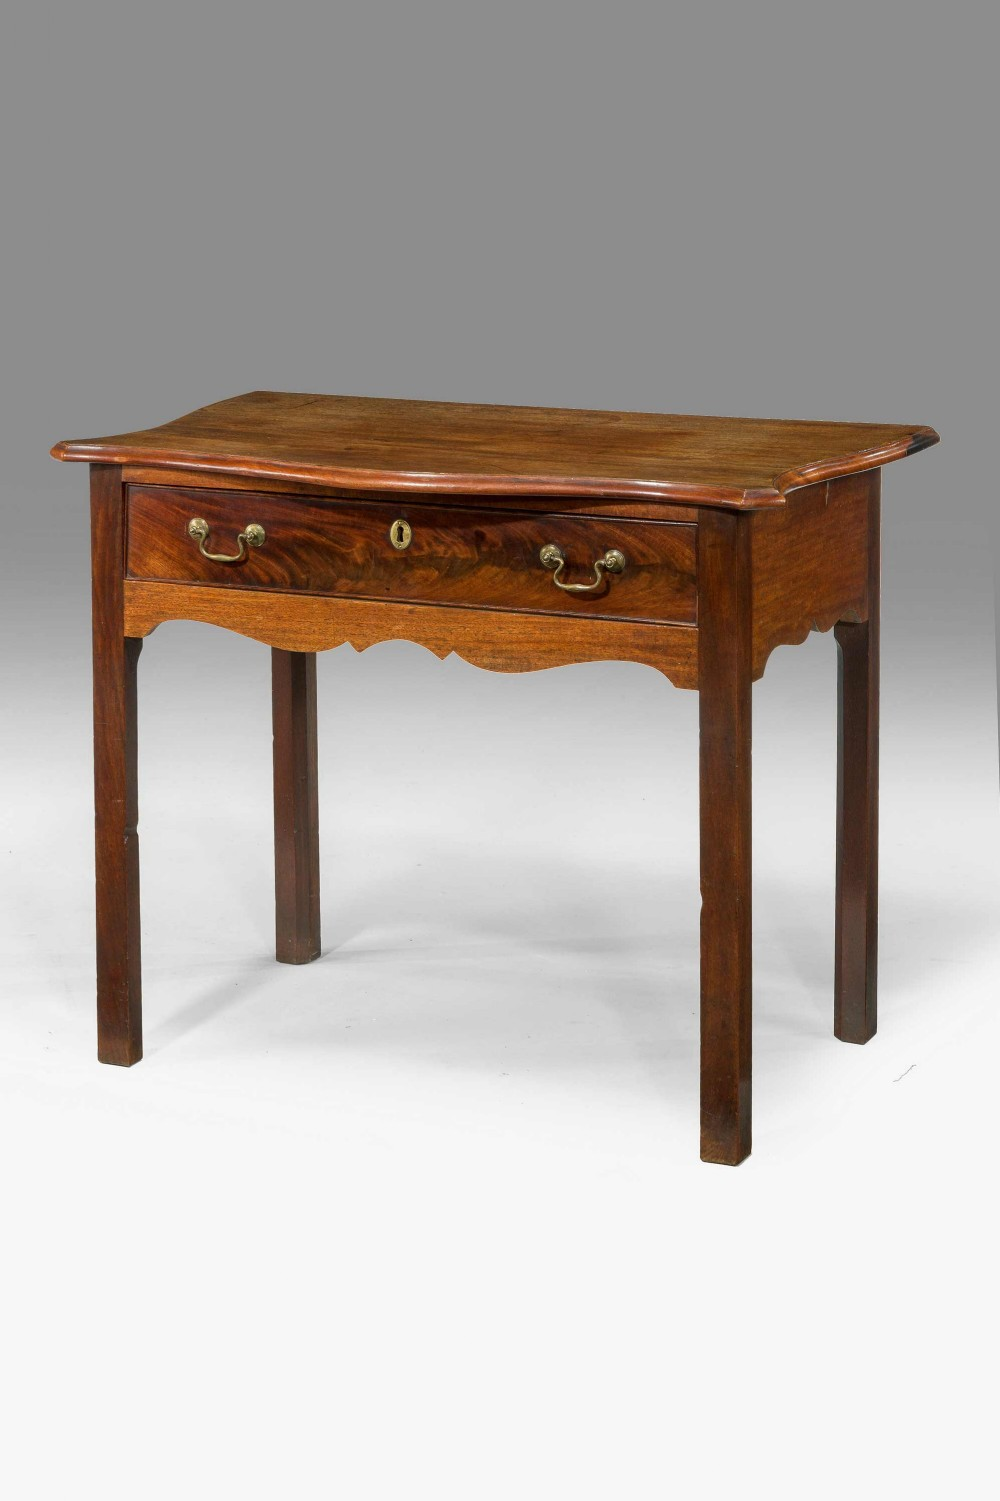 chippendale period mahogany side table